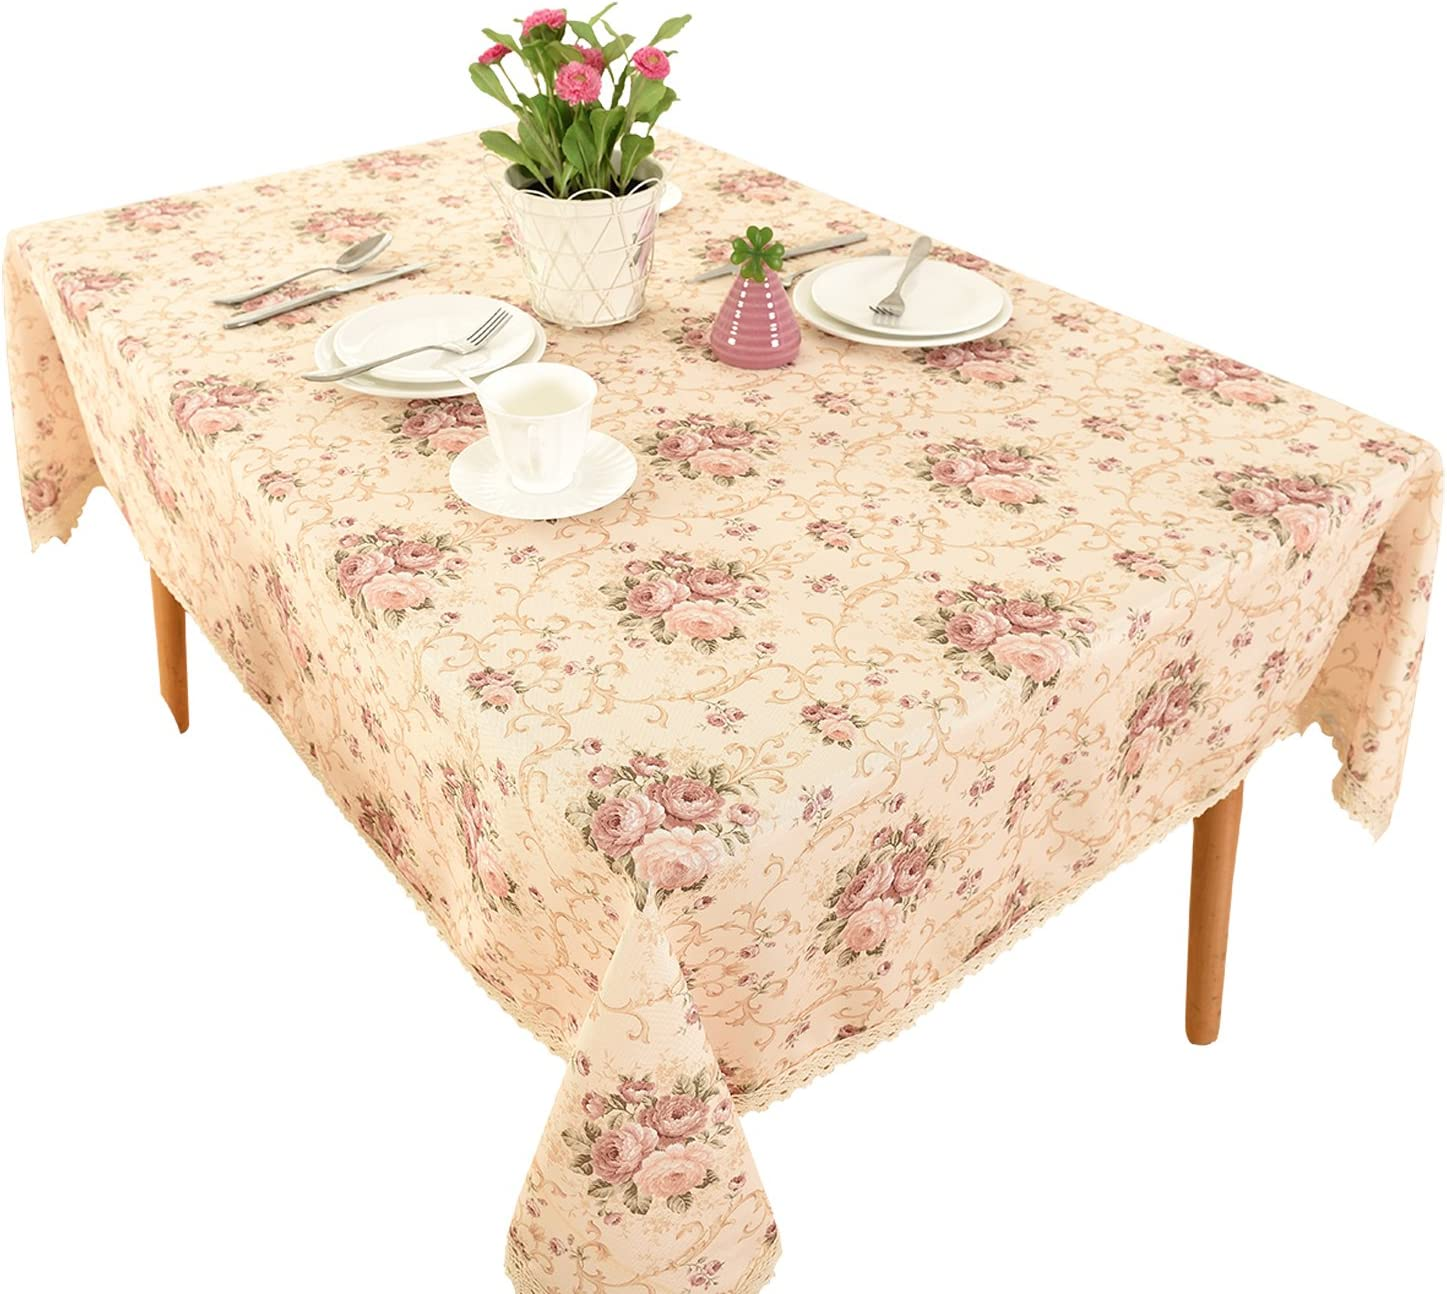 HIGHFLY Vintage Flower Decorative 55x87 Rectangle Linen Tablecloth Printed Pattern Washable Table Cloth Dinner Kitchen Home Decor - Multi Colors & Sizes